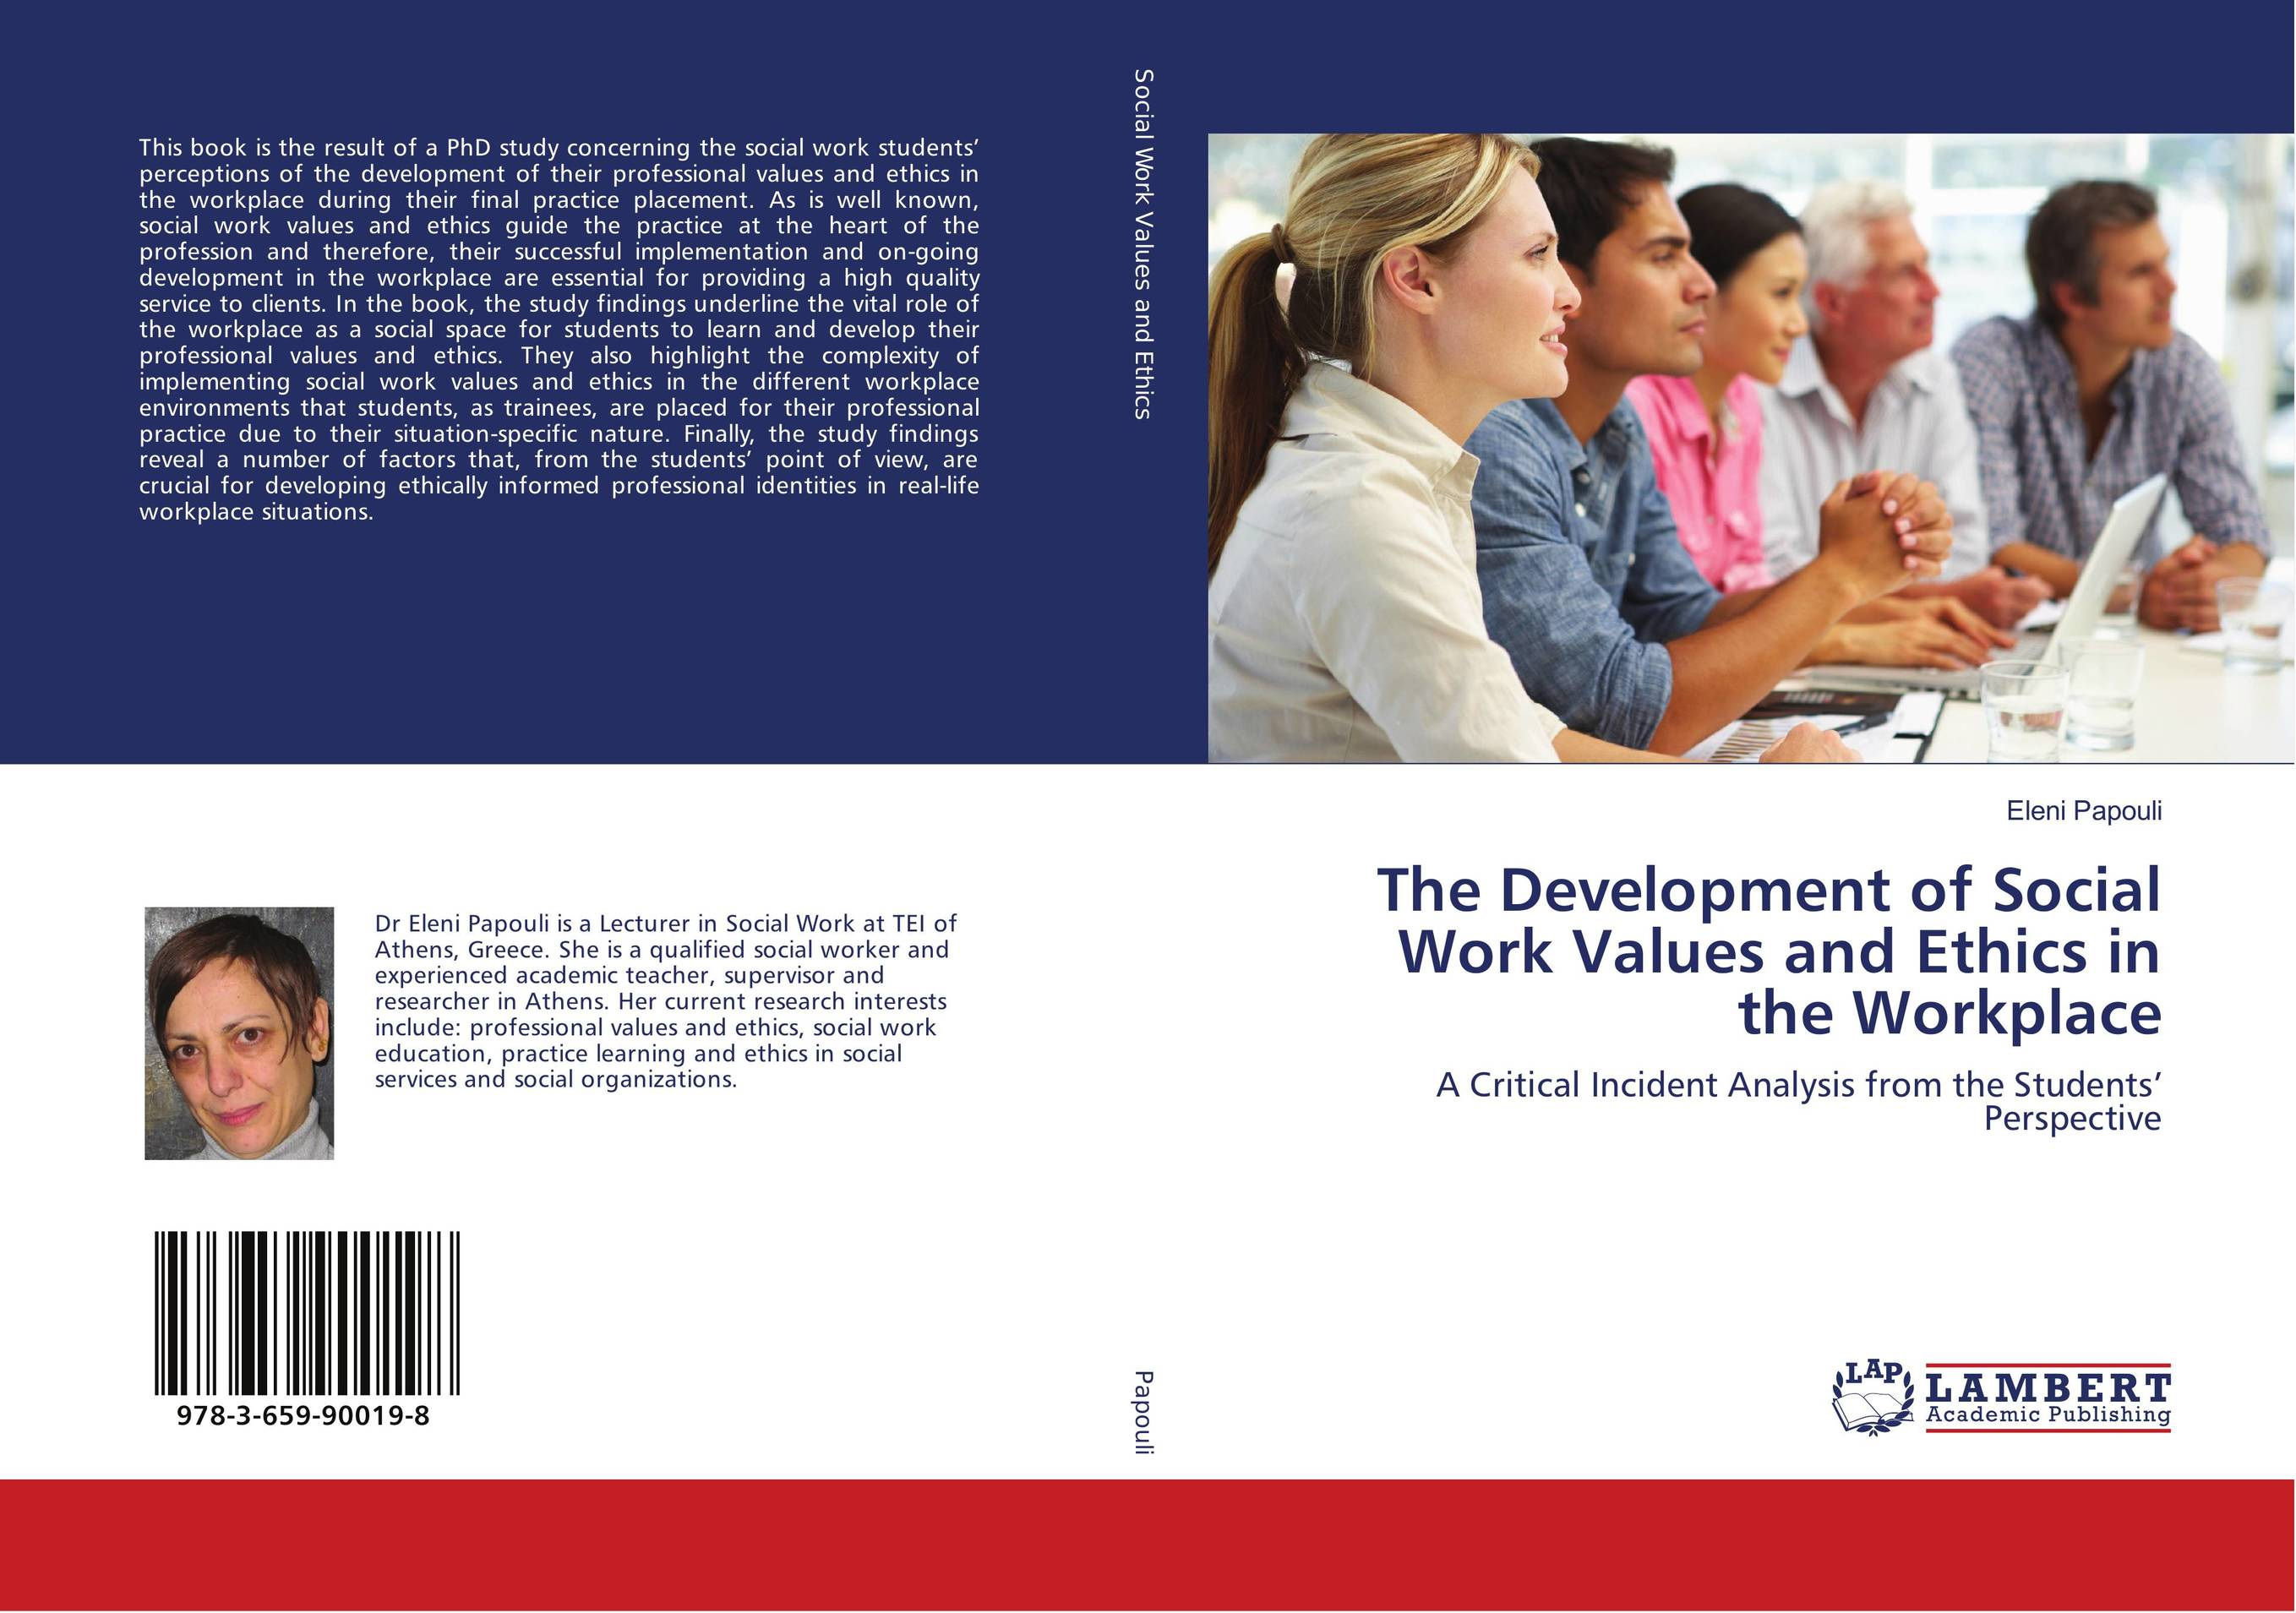 professional values and ethics of social work This program will address the integration of core values and ethics of the social work profession into contemporary social work practice.